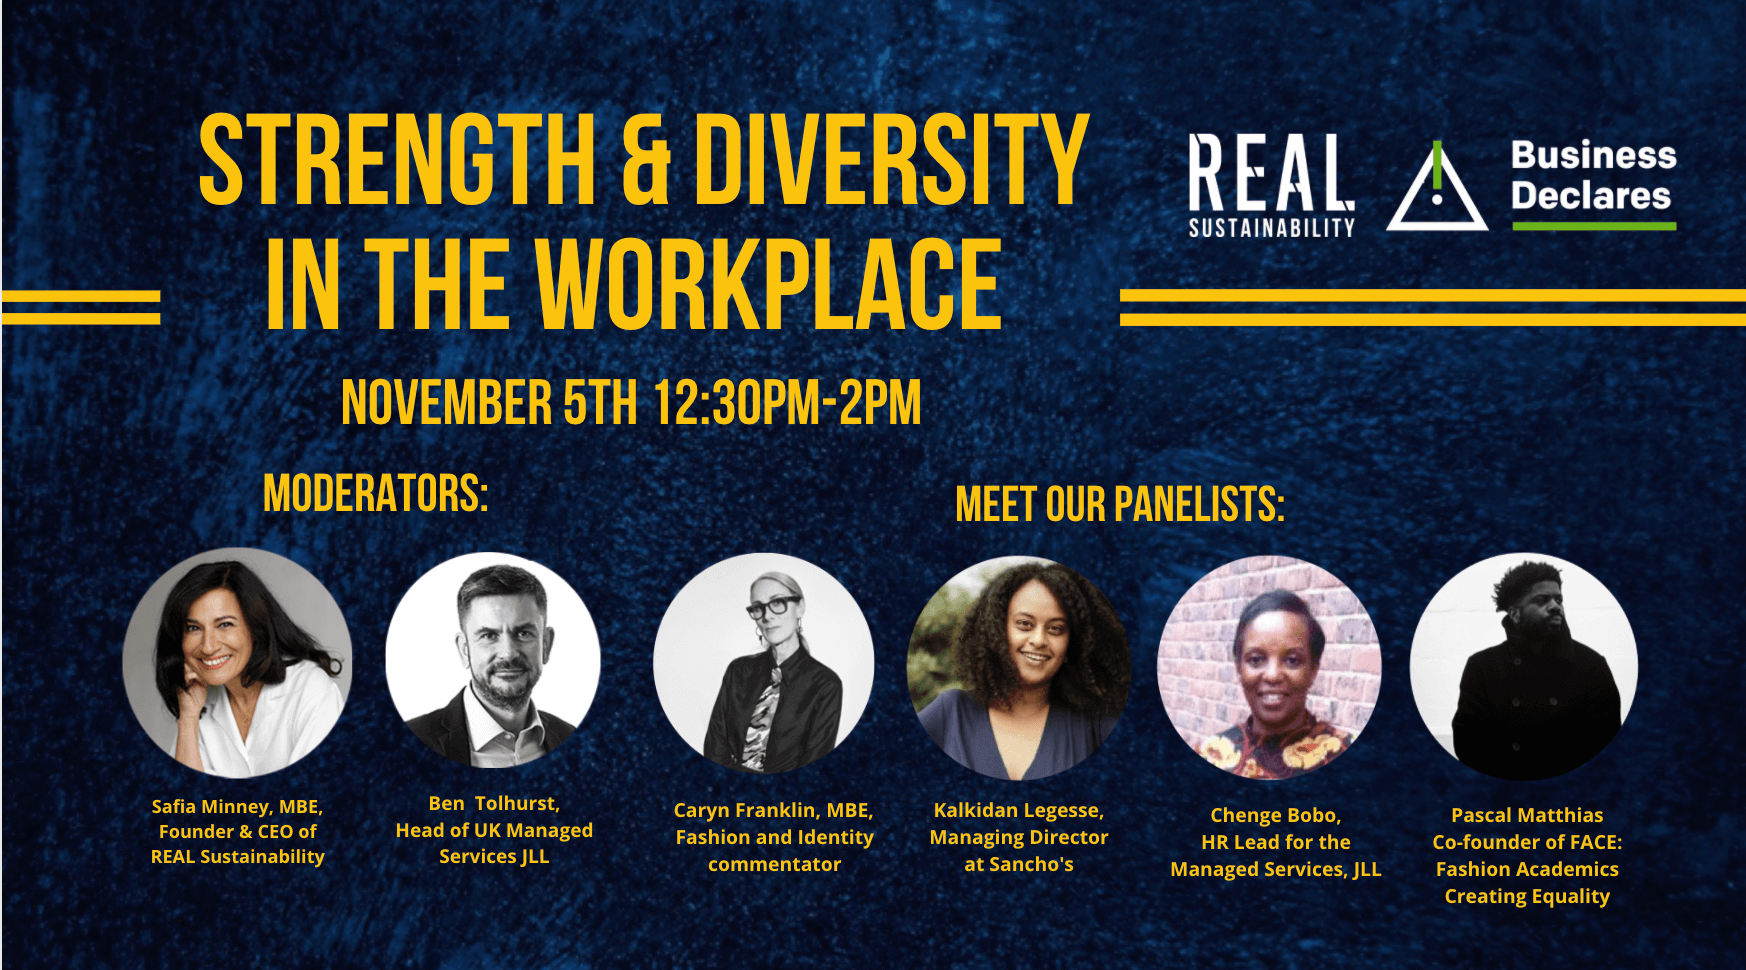 Strength & Diversity in the Workplace - real sustainability panel dicsussion